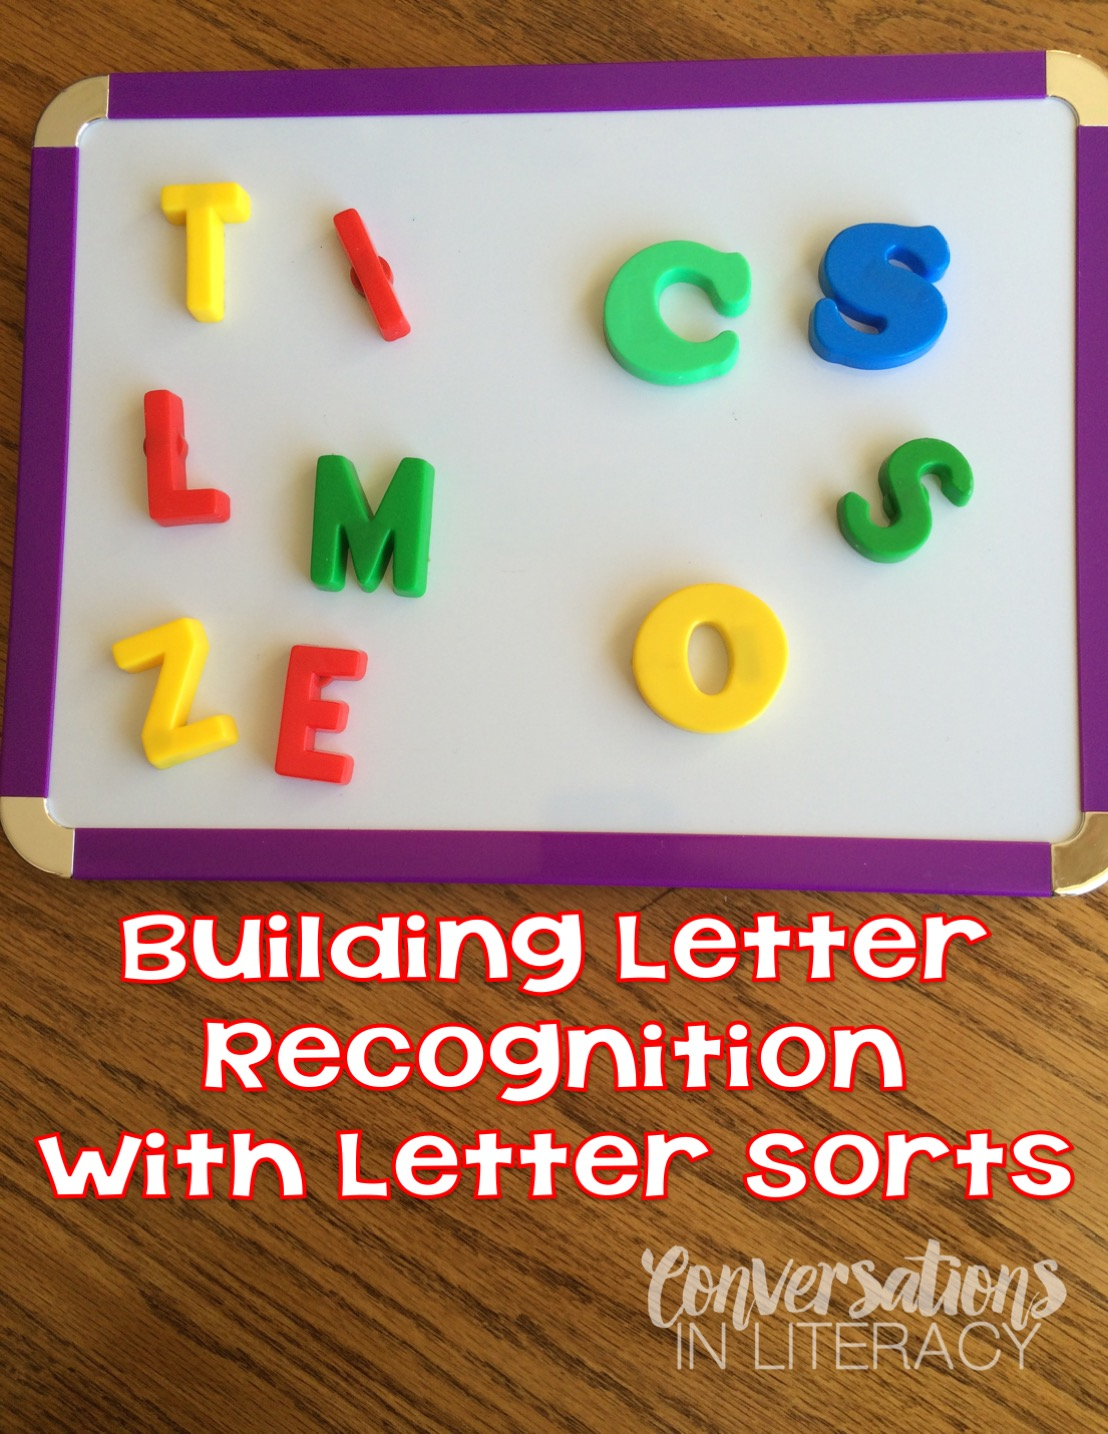 Conversations In Literacy Tips To Build Quick Letter Fluency